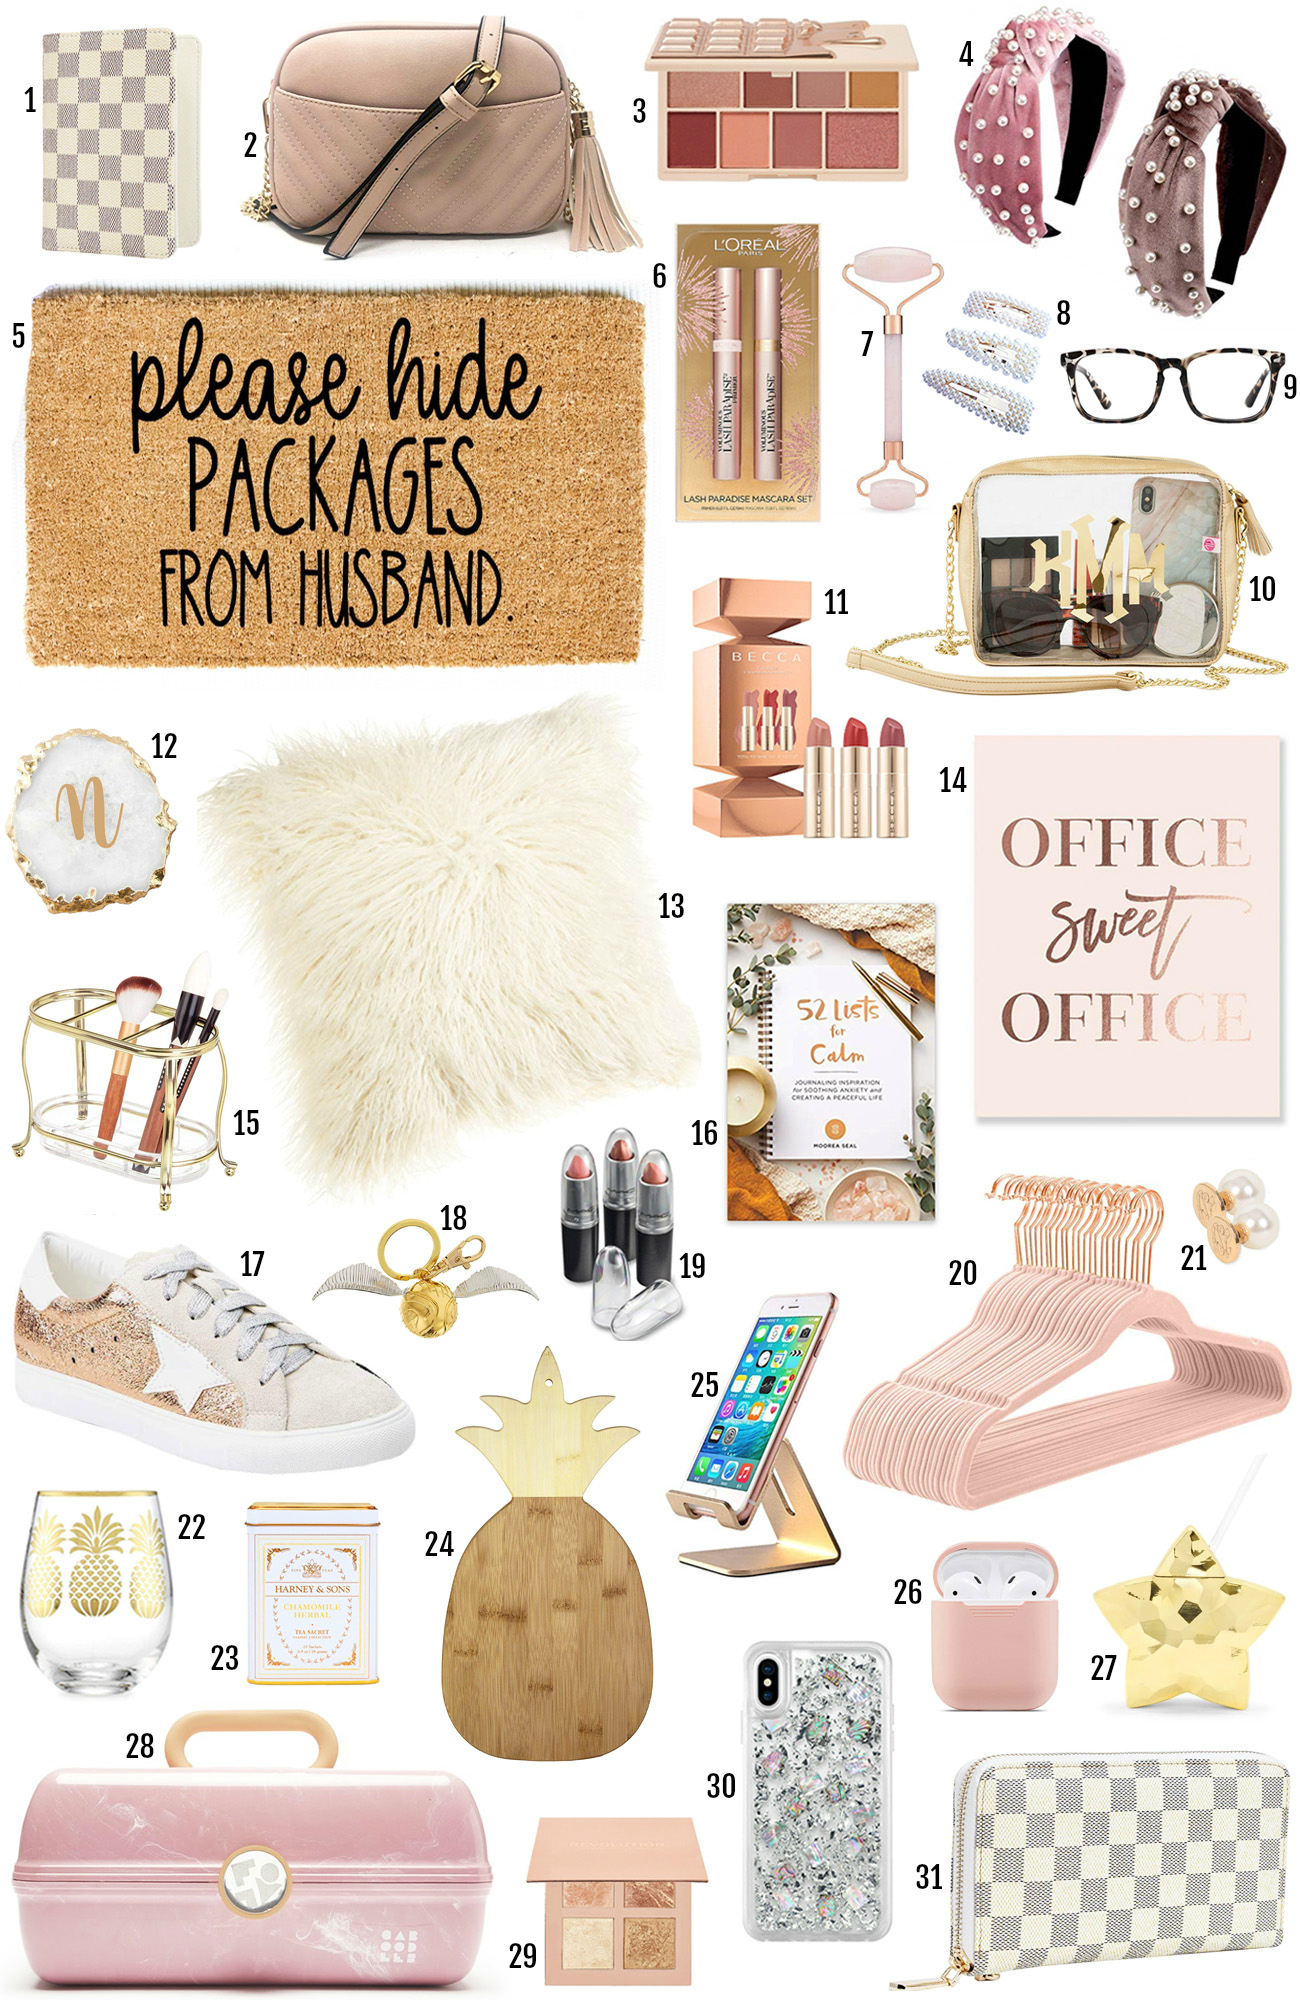 gifts for her | christmas gifts |xmas gifts | what to buy for christmas | xmas gift girlfriend | girl gifts | gift ideas for women | office sign| purse | makeup bag| lipstick